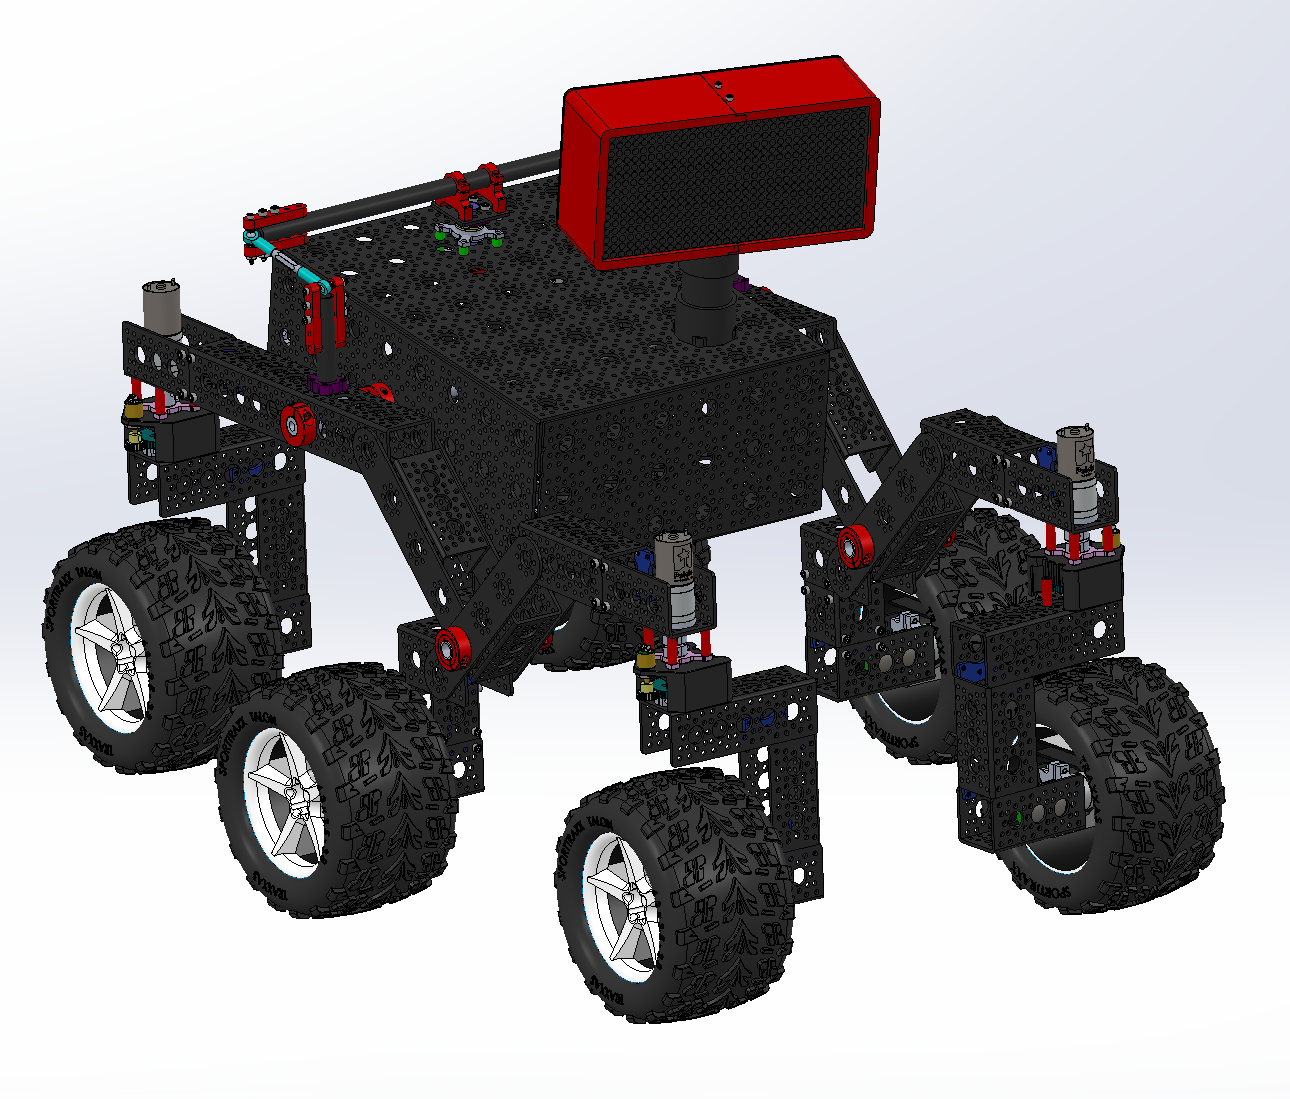 NASA's JPL Open Source Rover